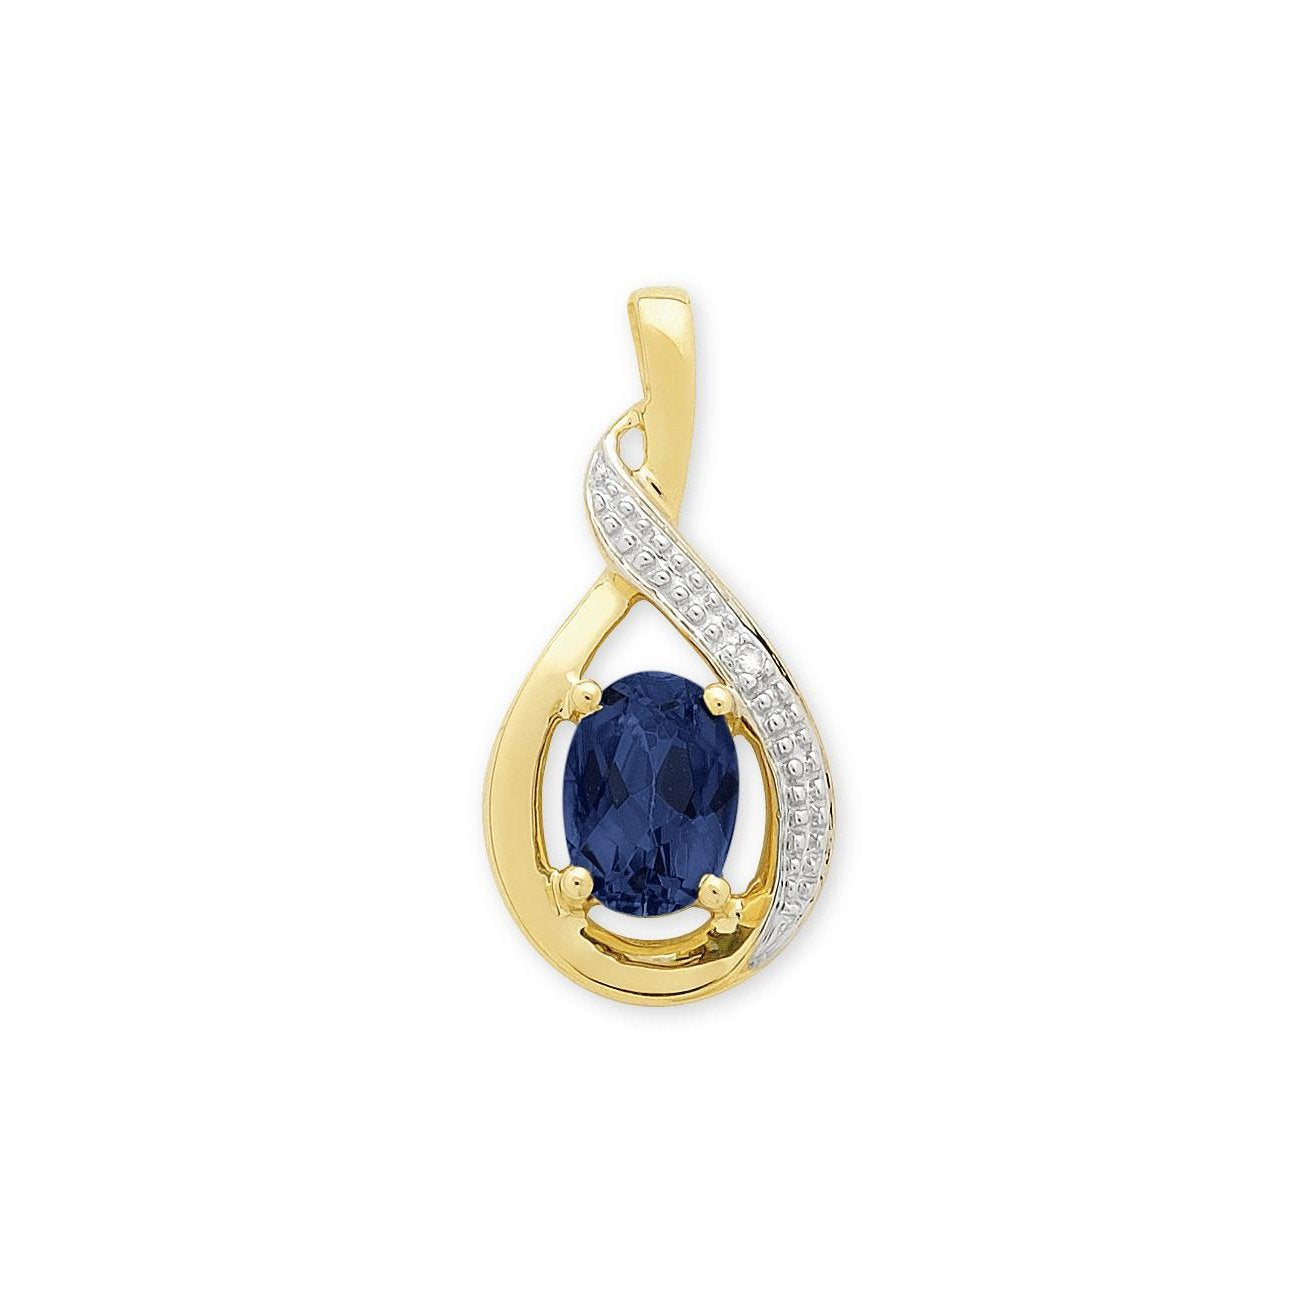 9ct Gold Created Sapphire & Diamond Pendant with Complimentary Plated Chain